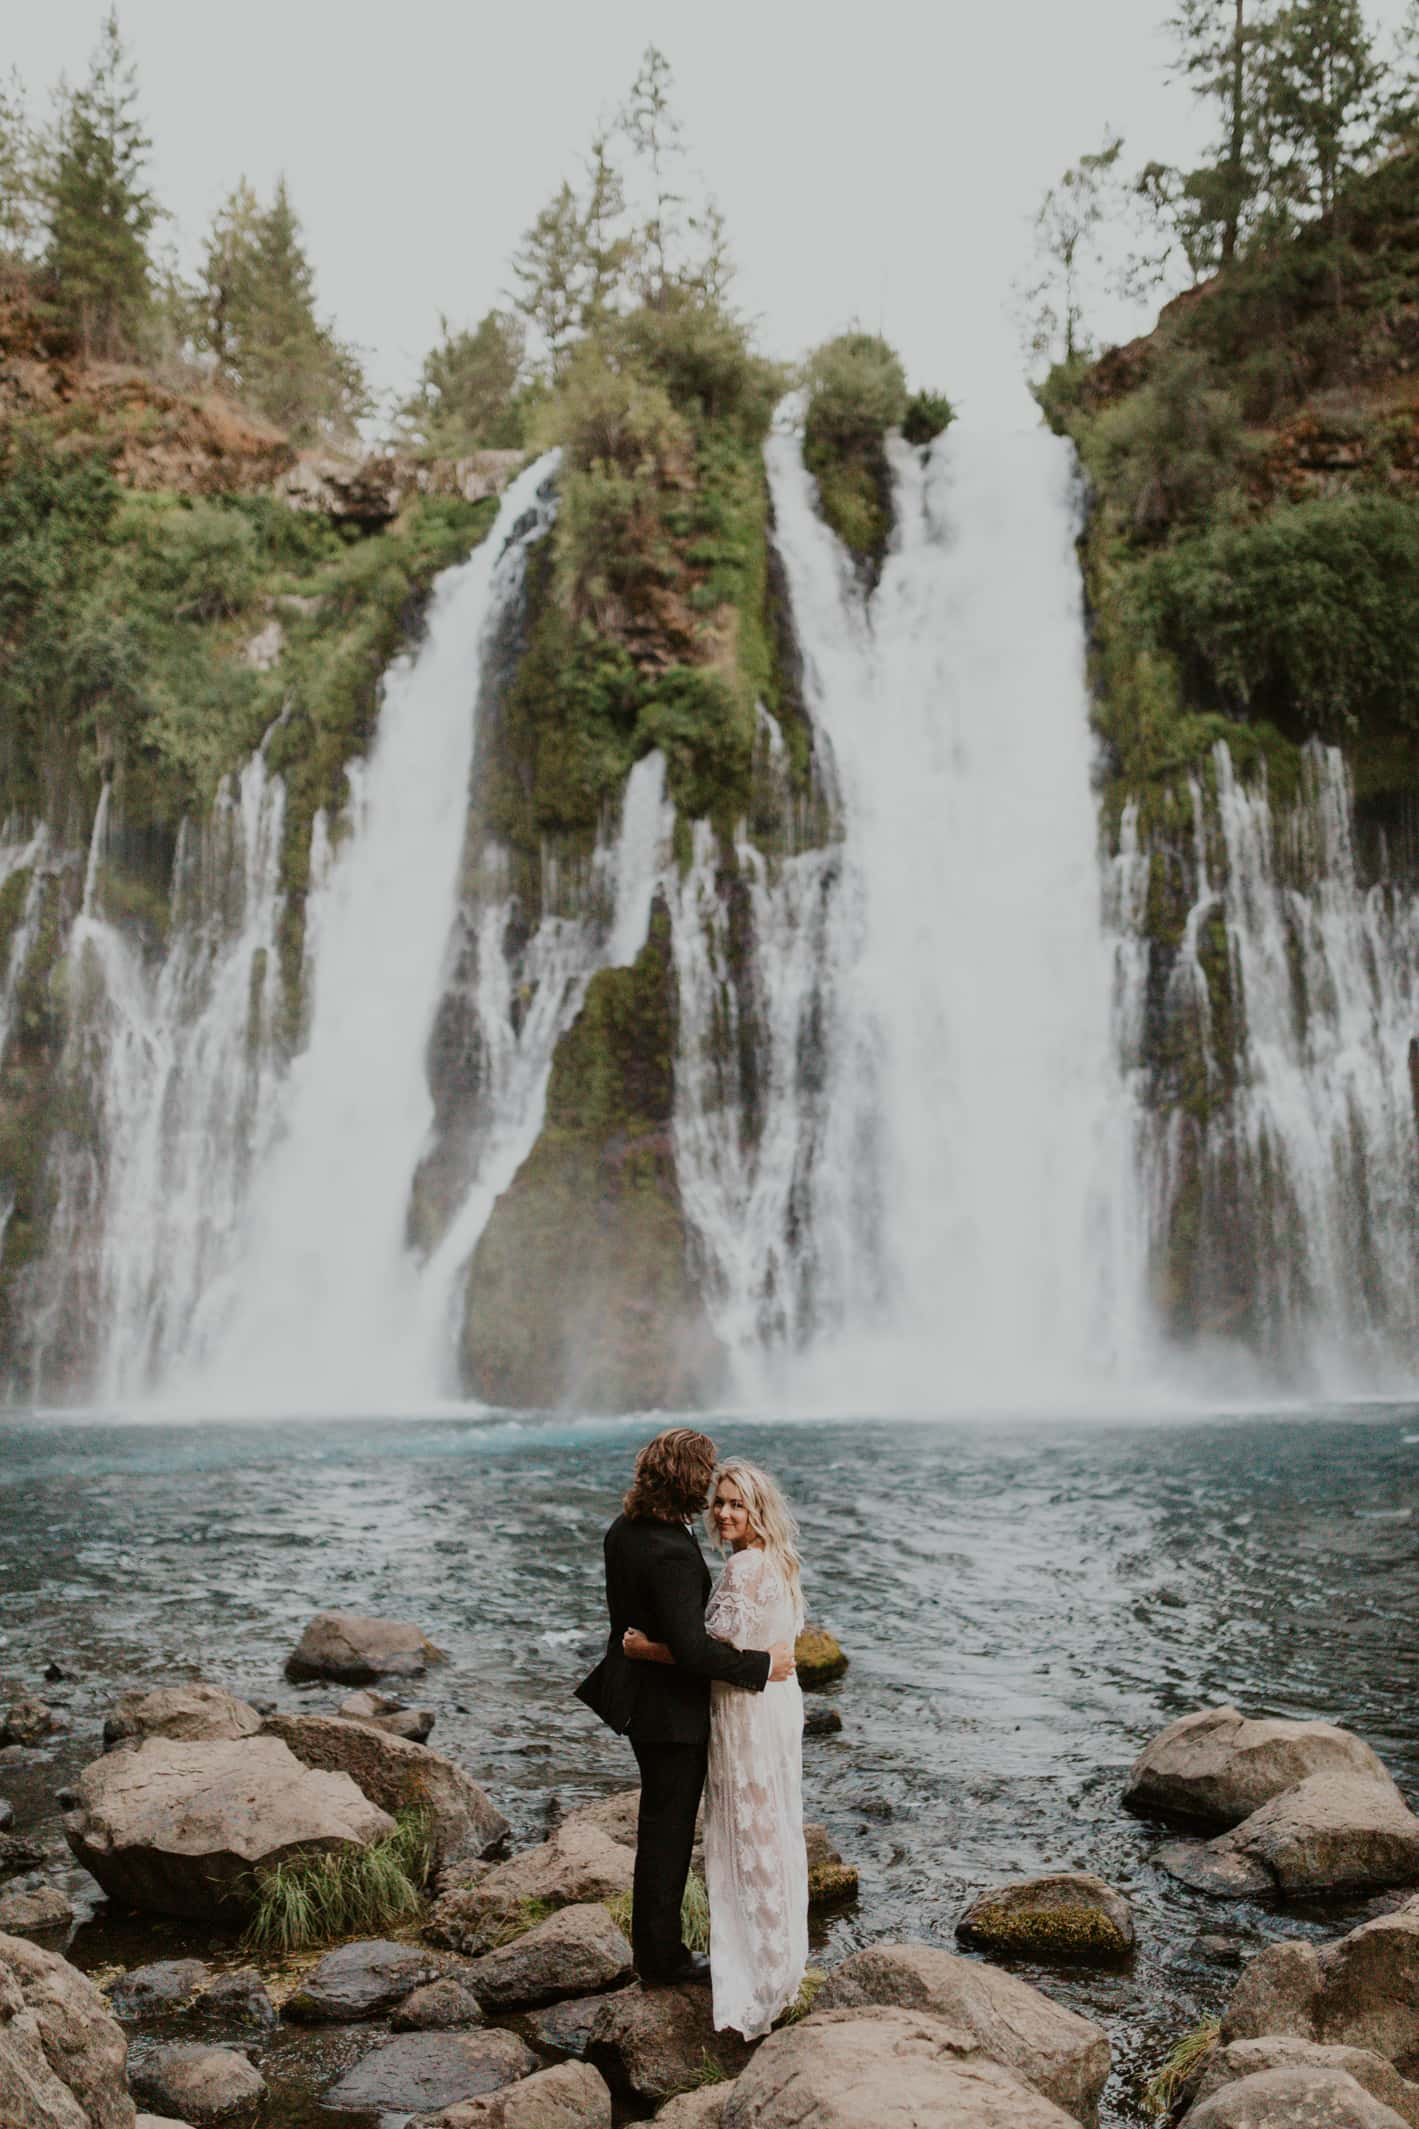 A bride and groom at Burney Falls on their elopement day in California.